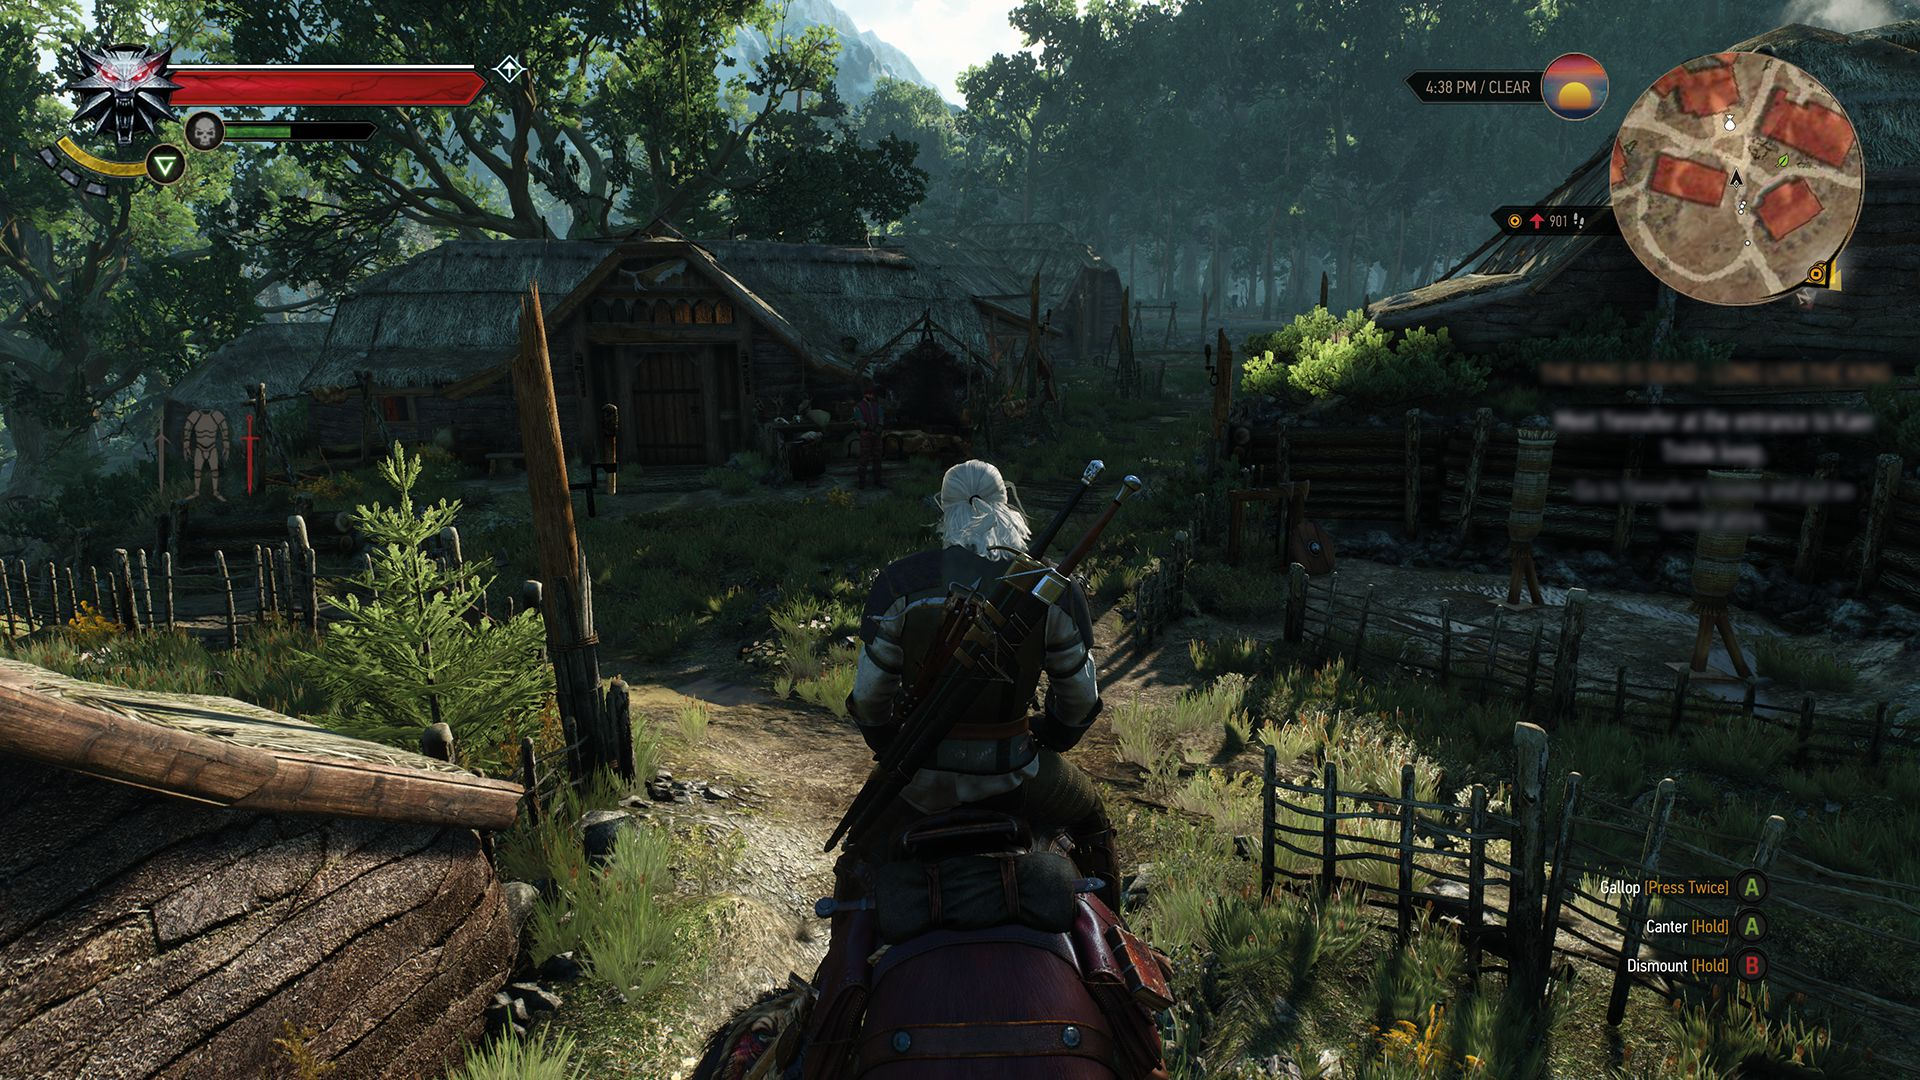 the_witcher_3_wild_hunt_hope_thats_a_tavern_with_cold_beer_and_eager_gwent_players_1430900905